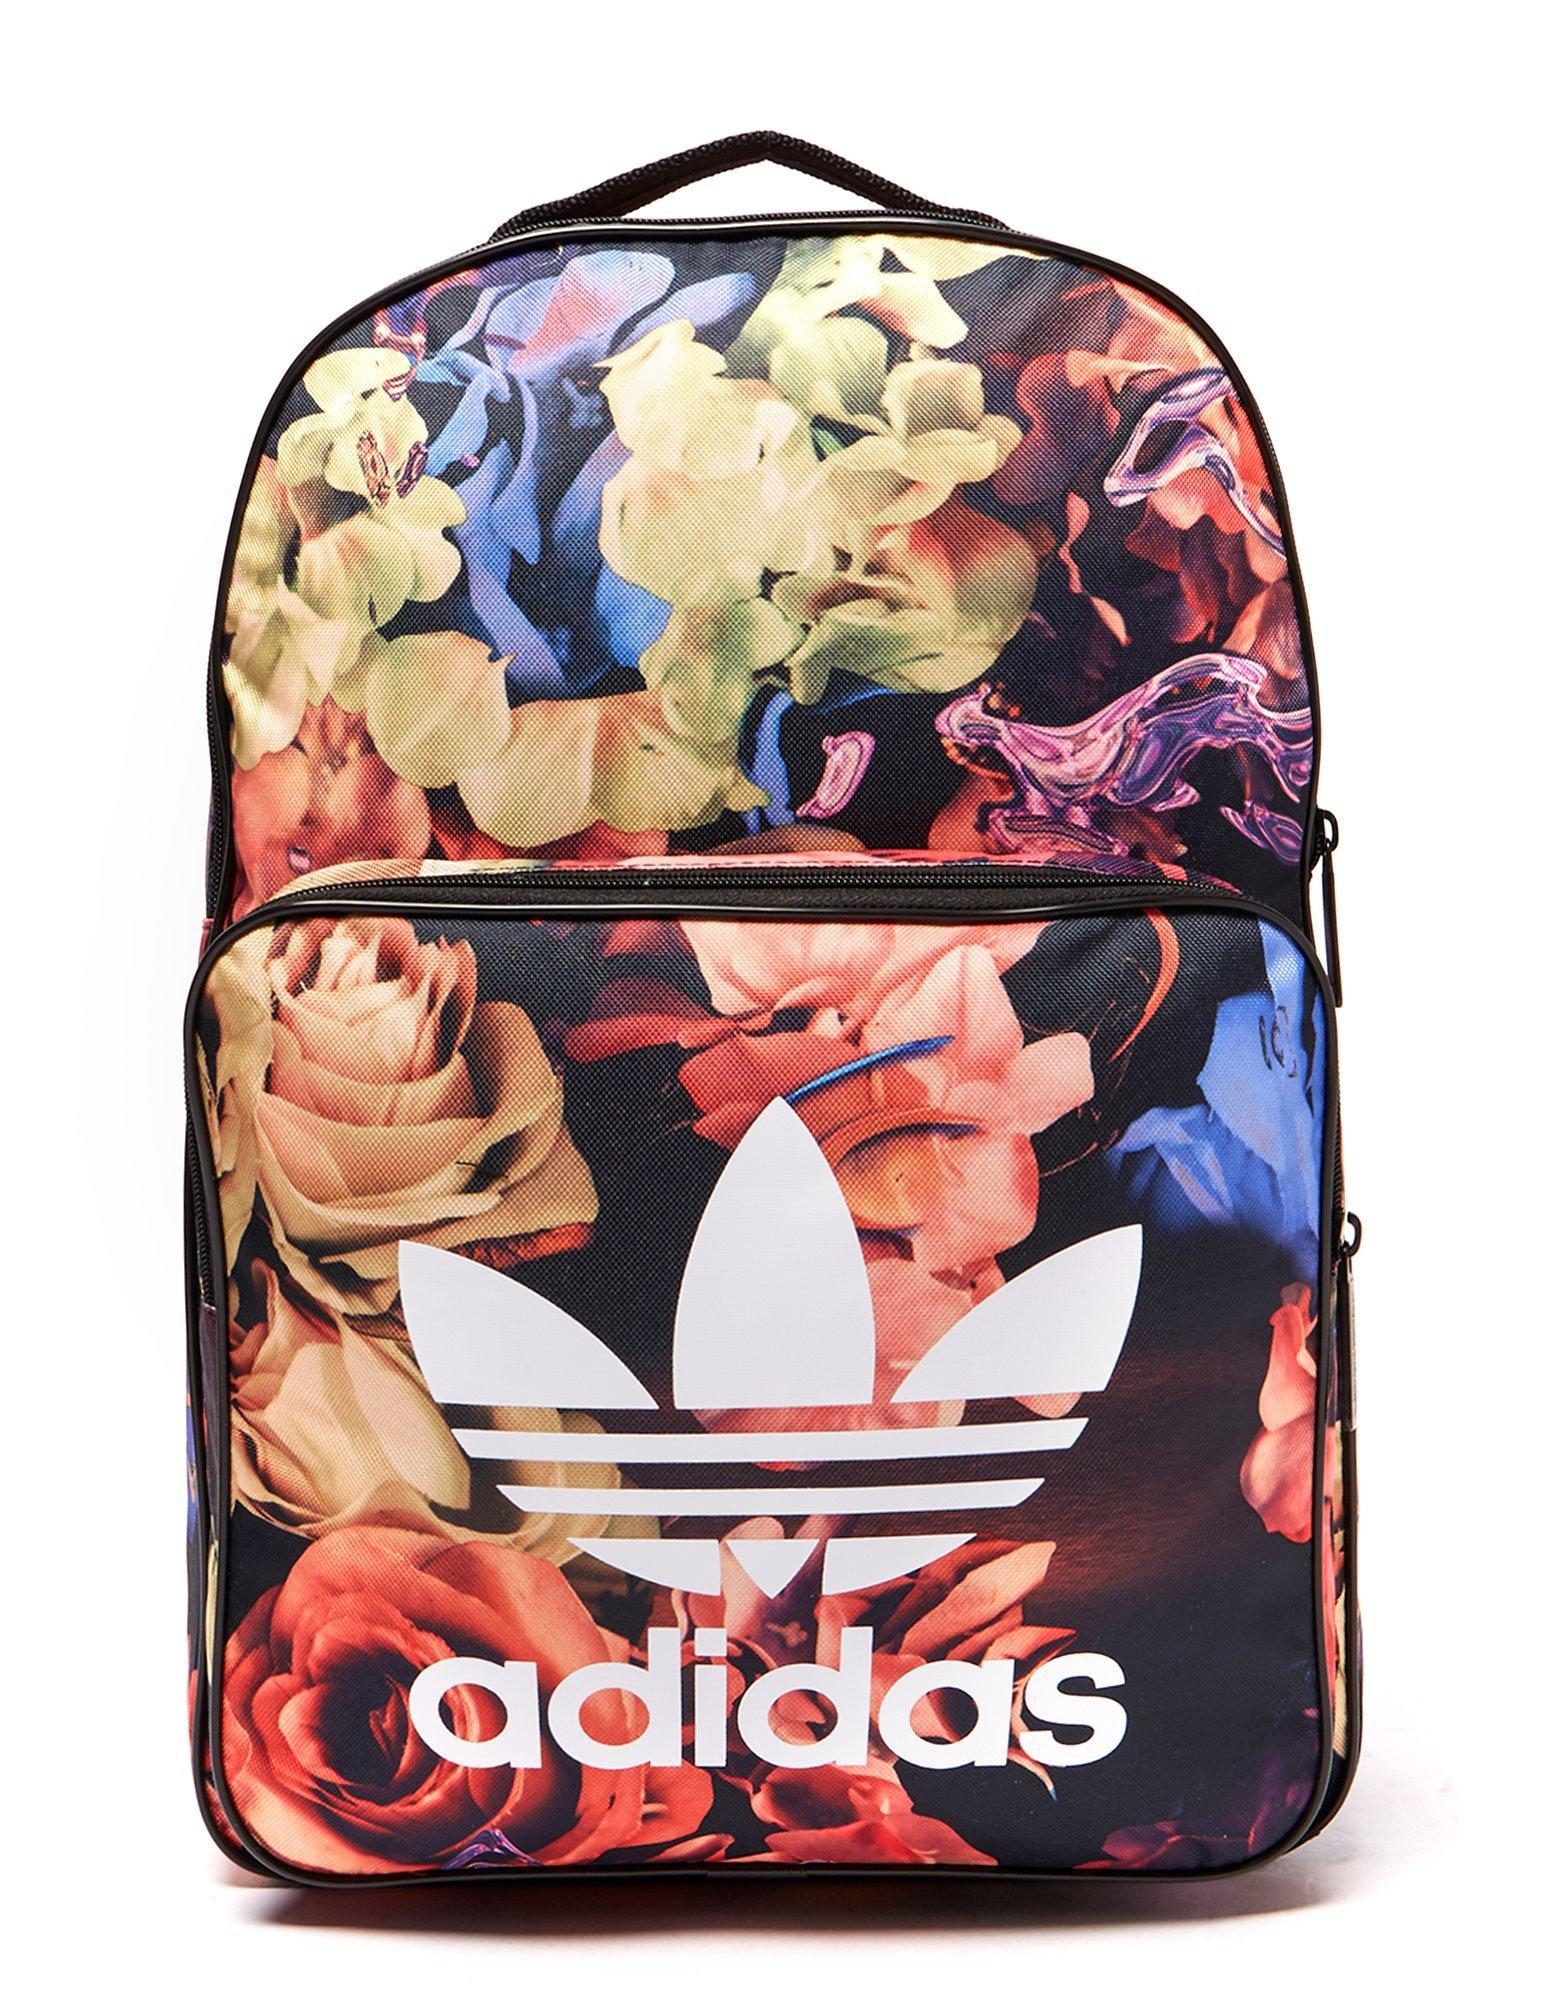 adidas Originals Rose Backpack - Lyst 9621de61c3